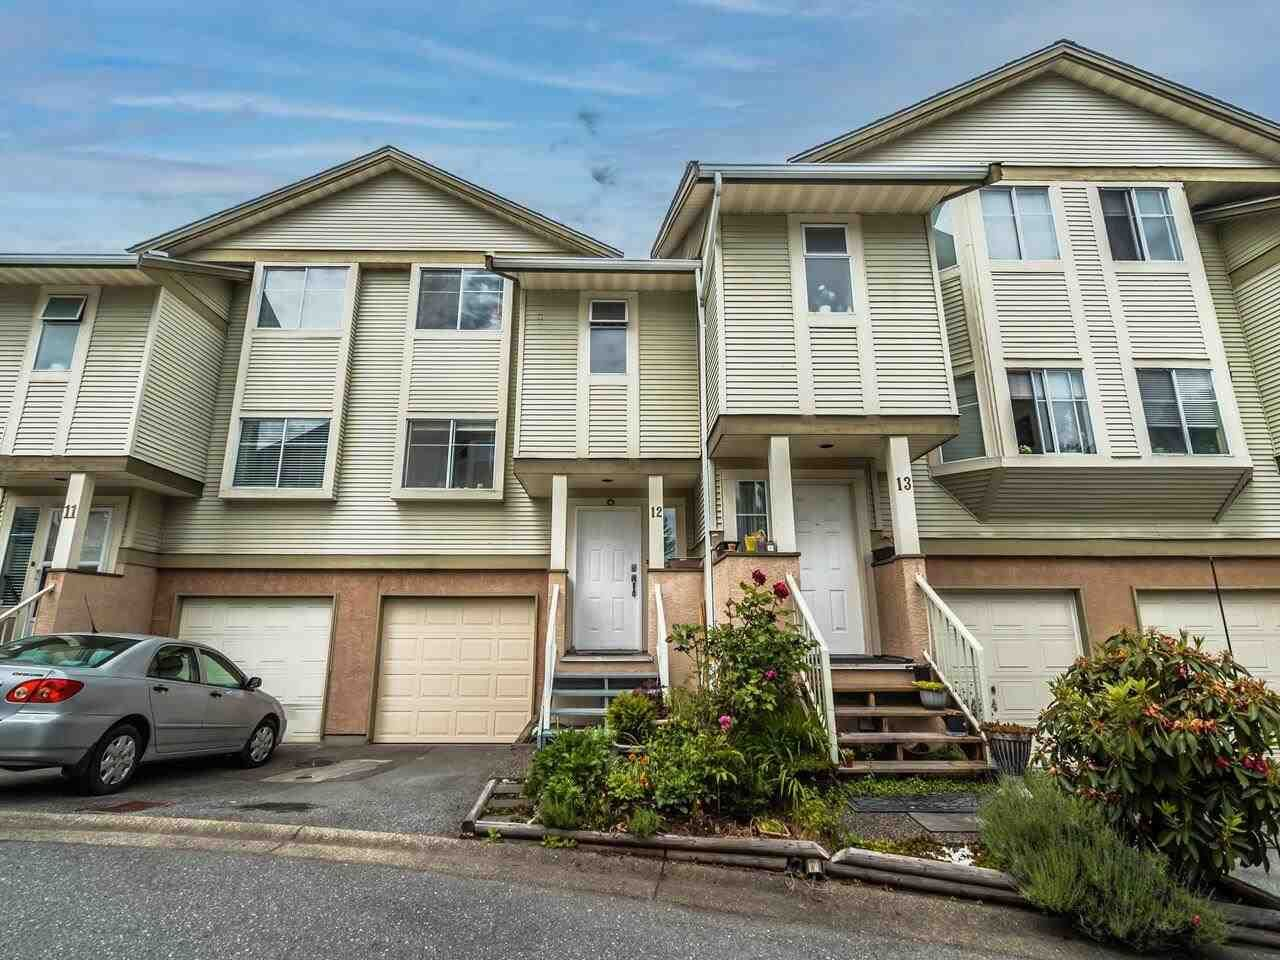 """Main Photo: 12 1318 BRUNETTE Avenue in Coquitlam: Maillardville Townhouse for sale in """"Place Pare"""" : MLS®# R2587903"""